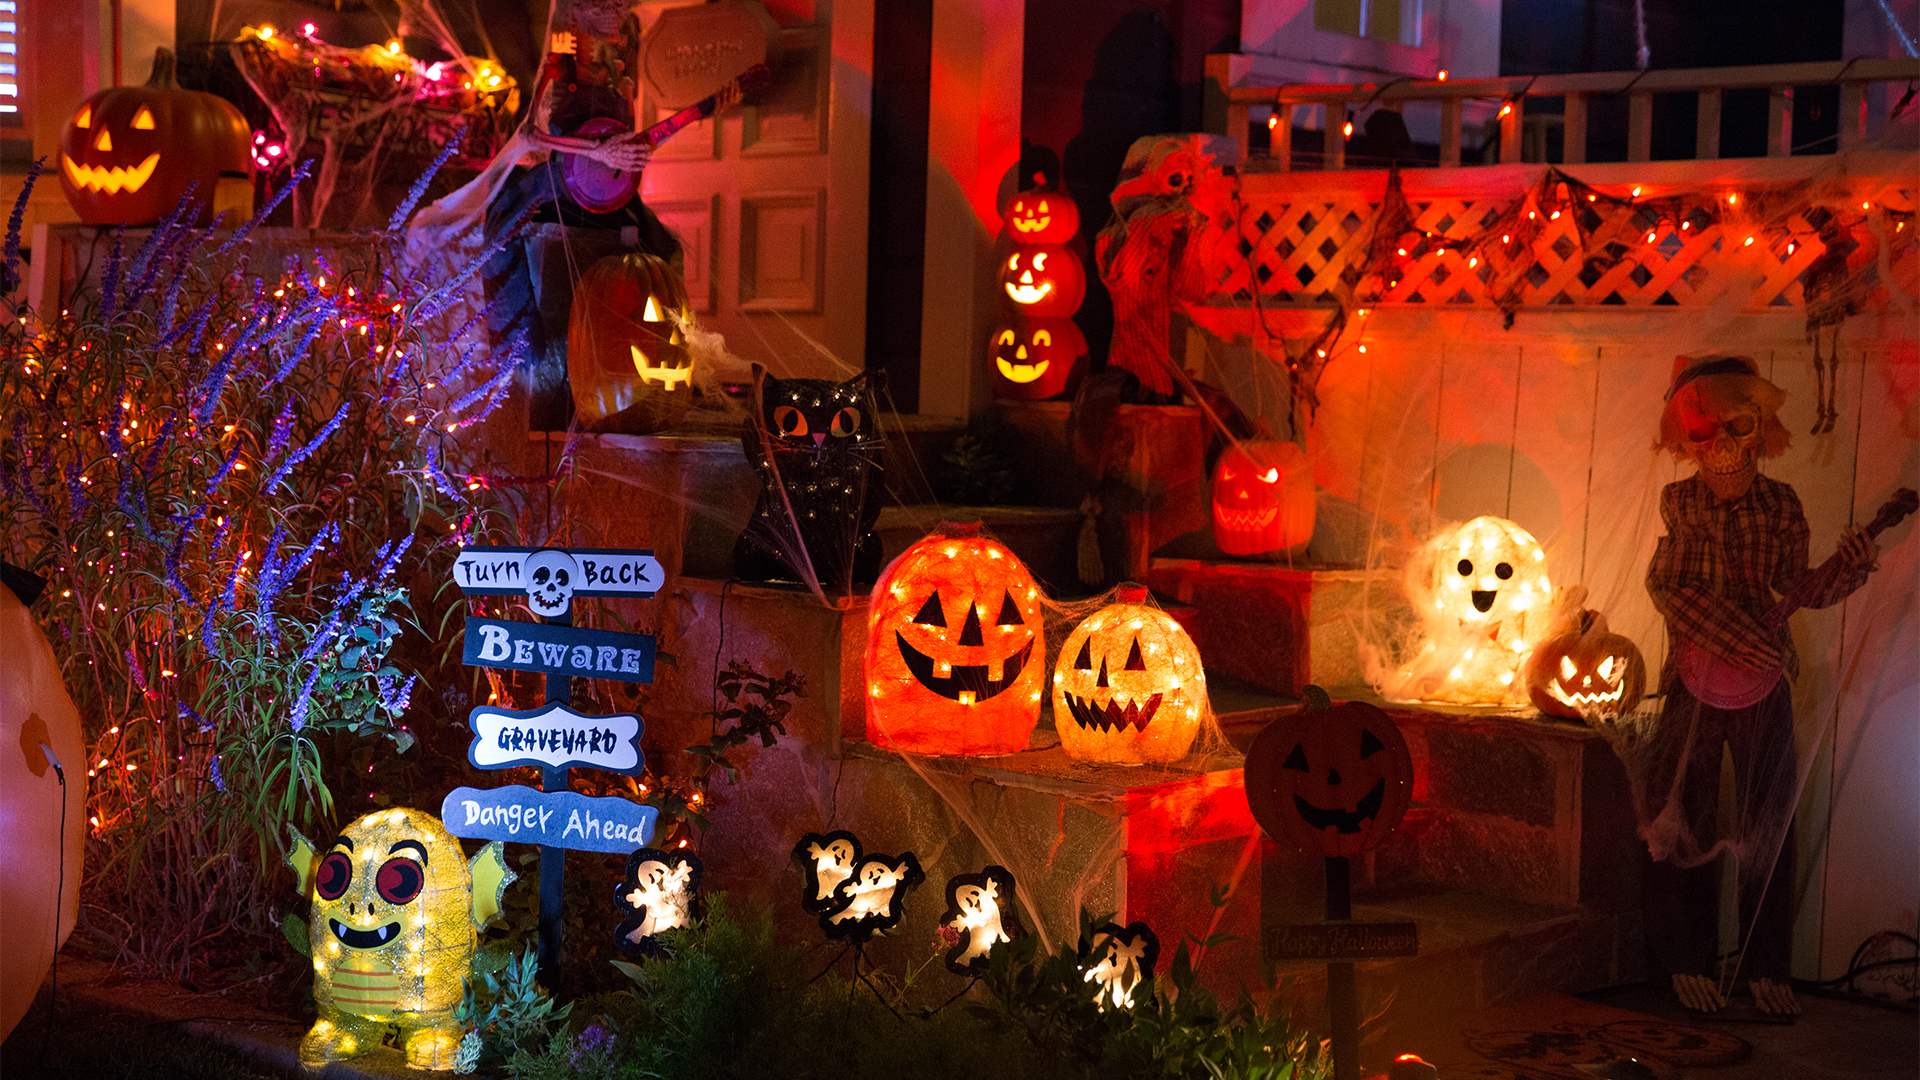 Halloween 2020 Dc Area Events Halloween 2020: List of local events | WFLA